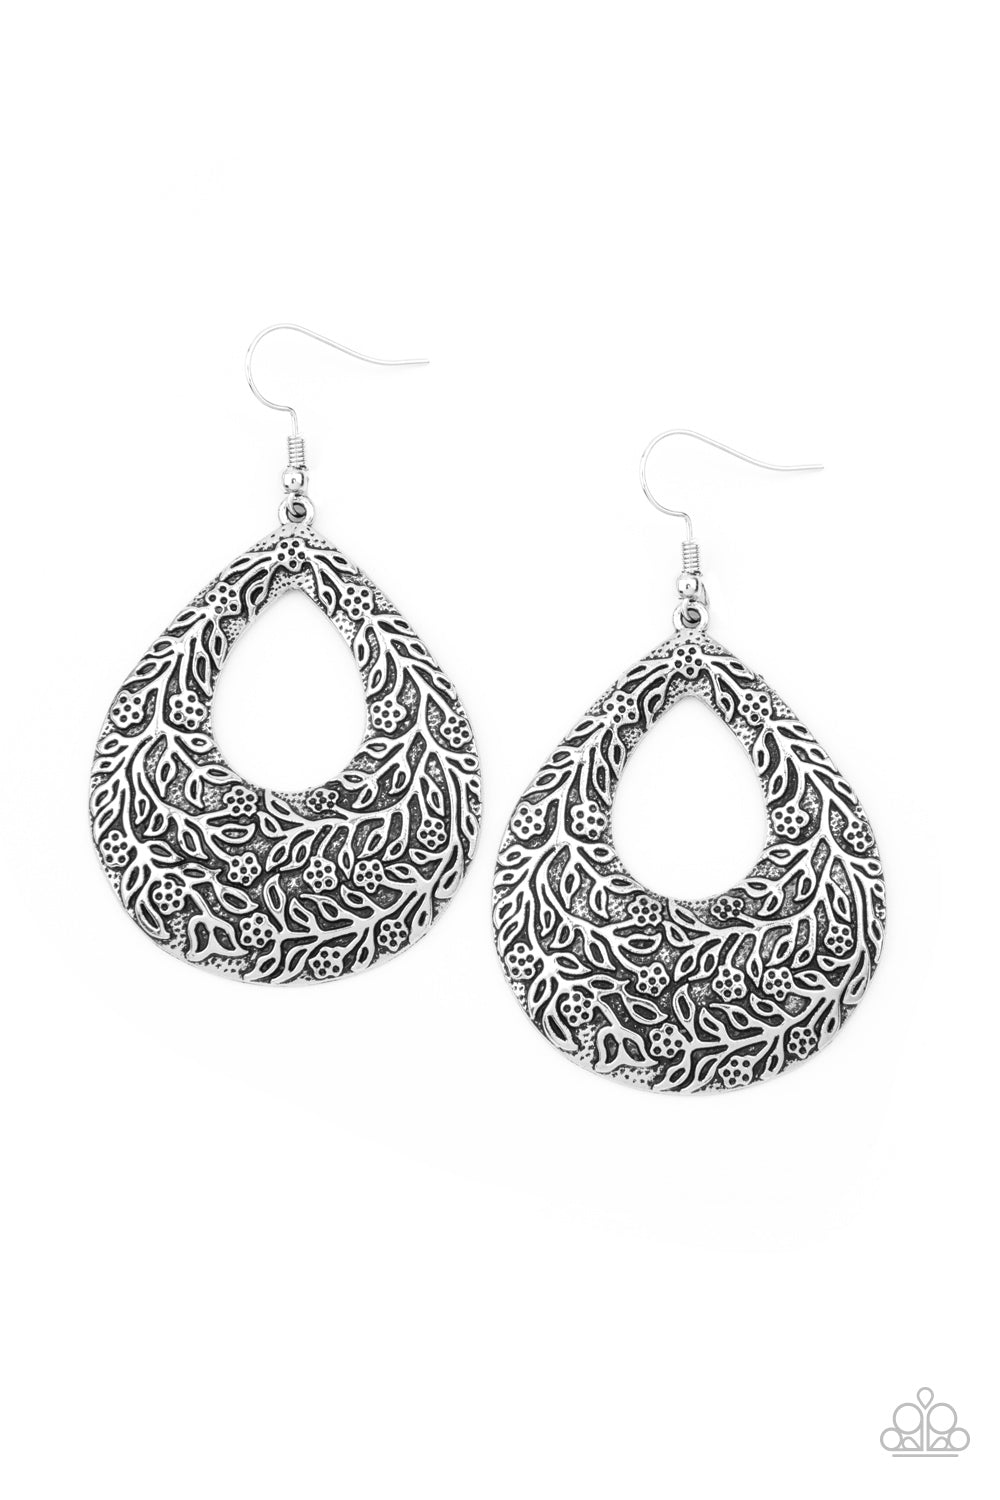 Paparazzi Flirtatiously Flourishing - Silver Earrings